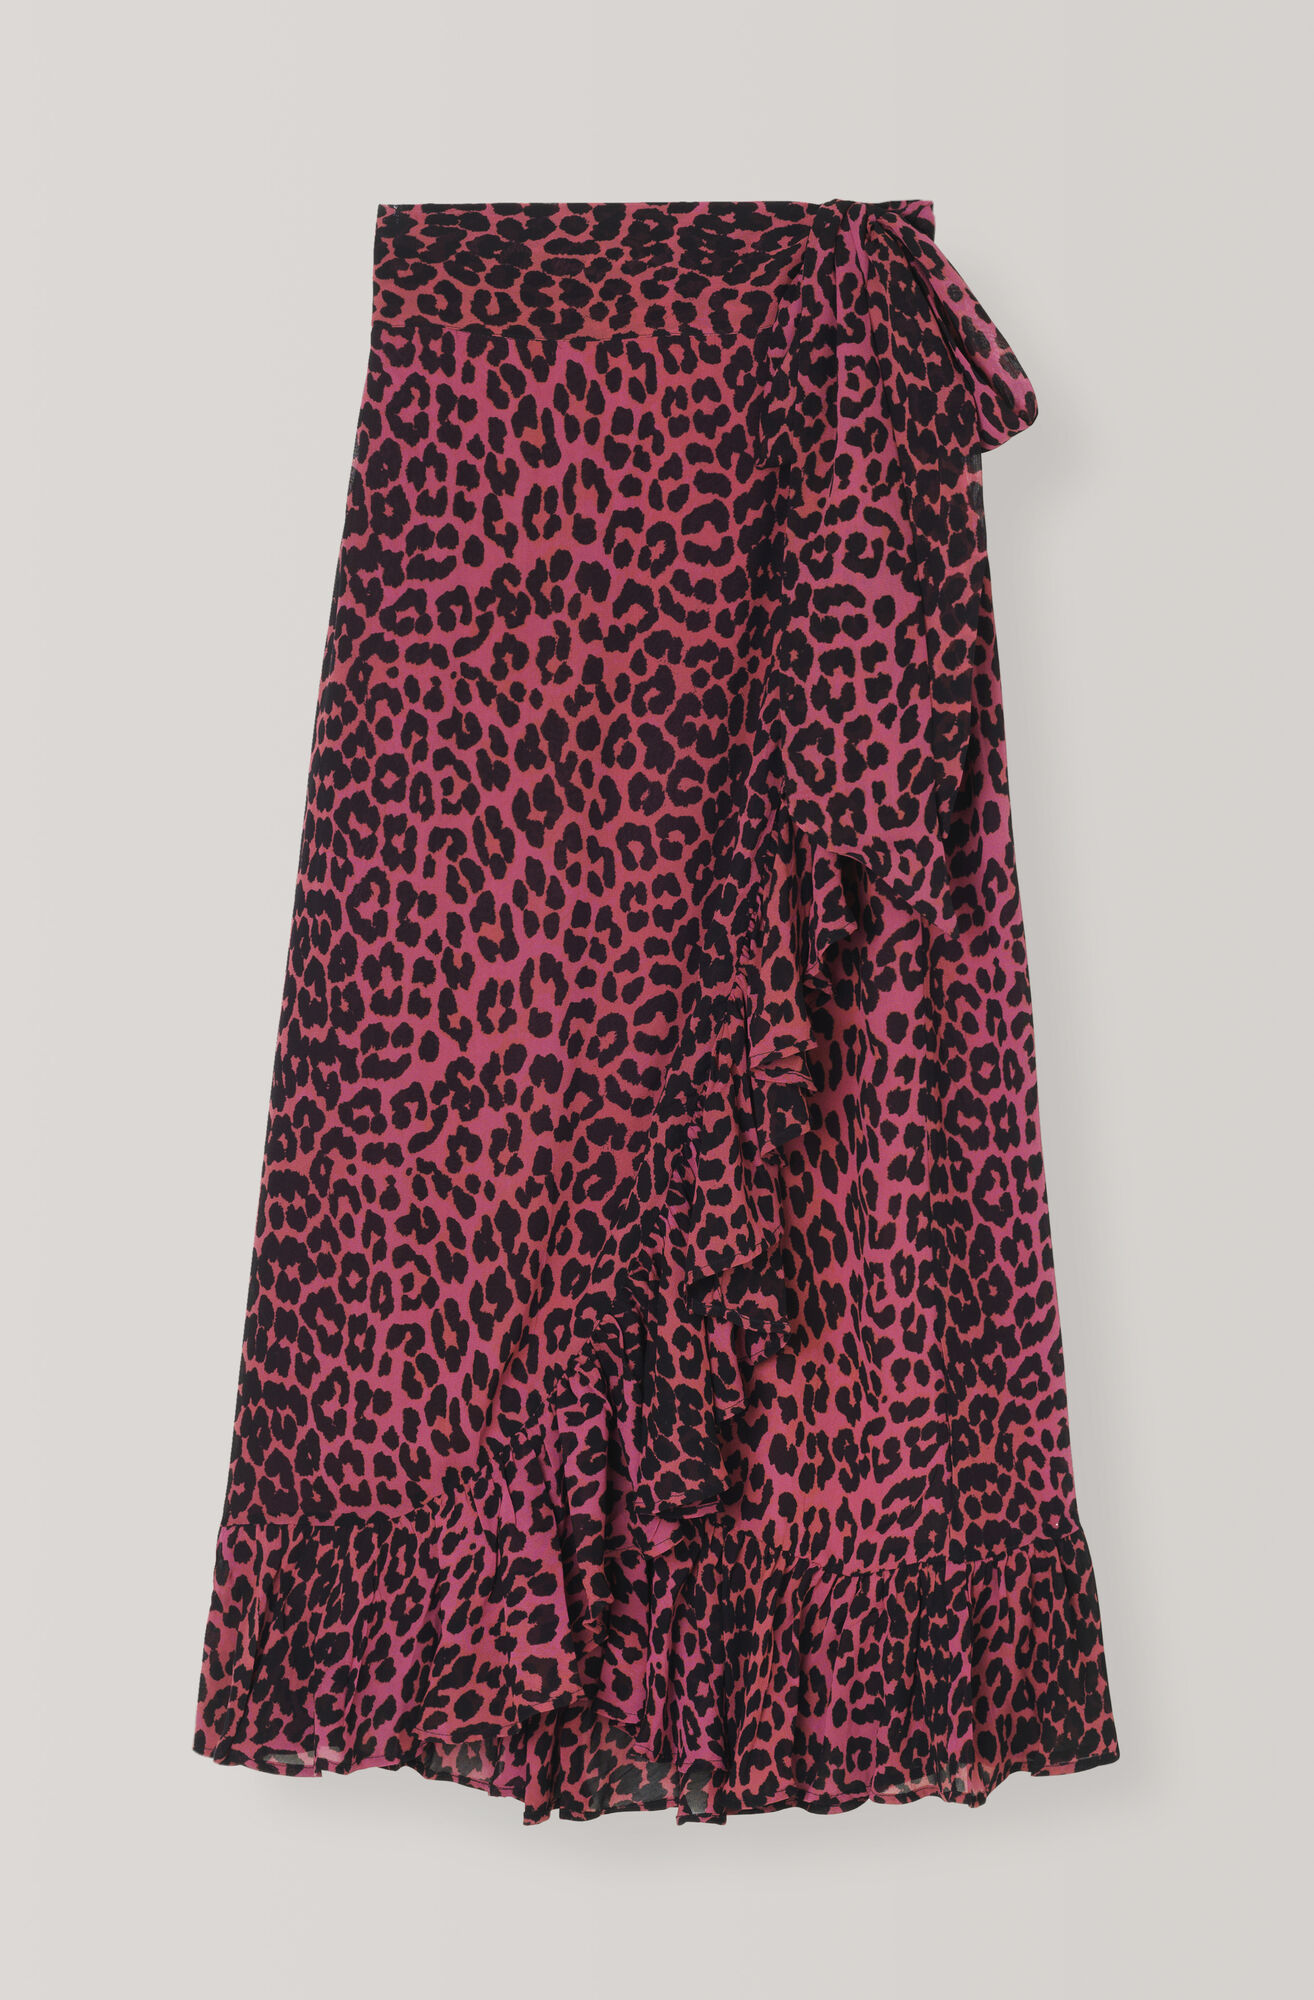 Carnivora Leopard Love for Leopard Wrap Skirt, Hot Pink, hi-res